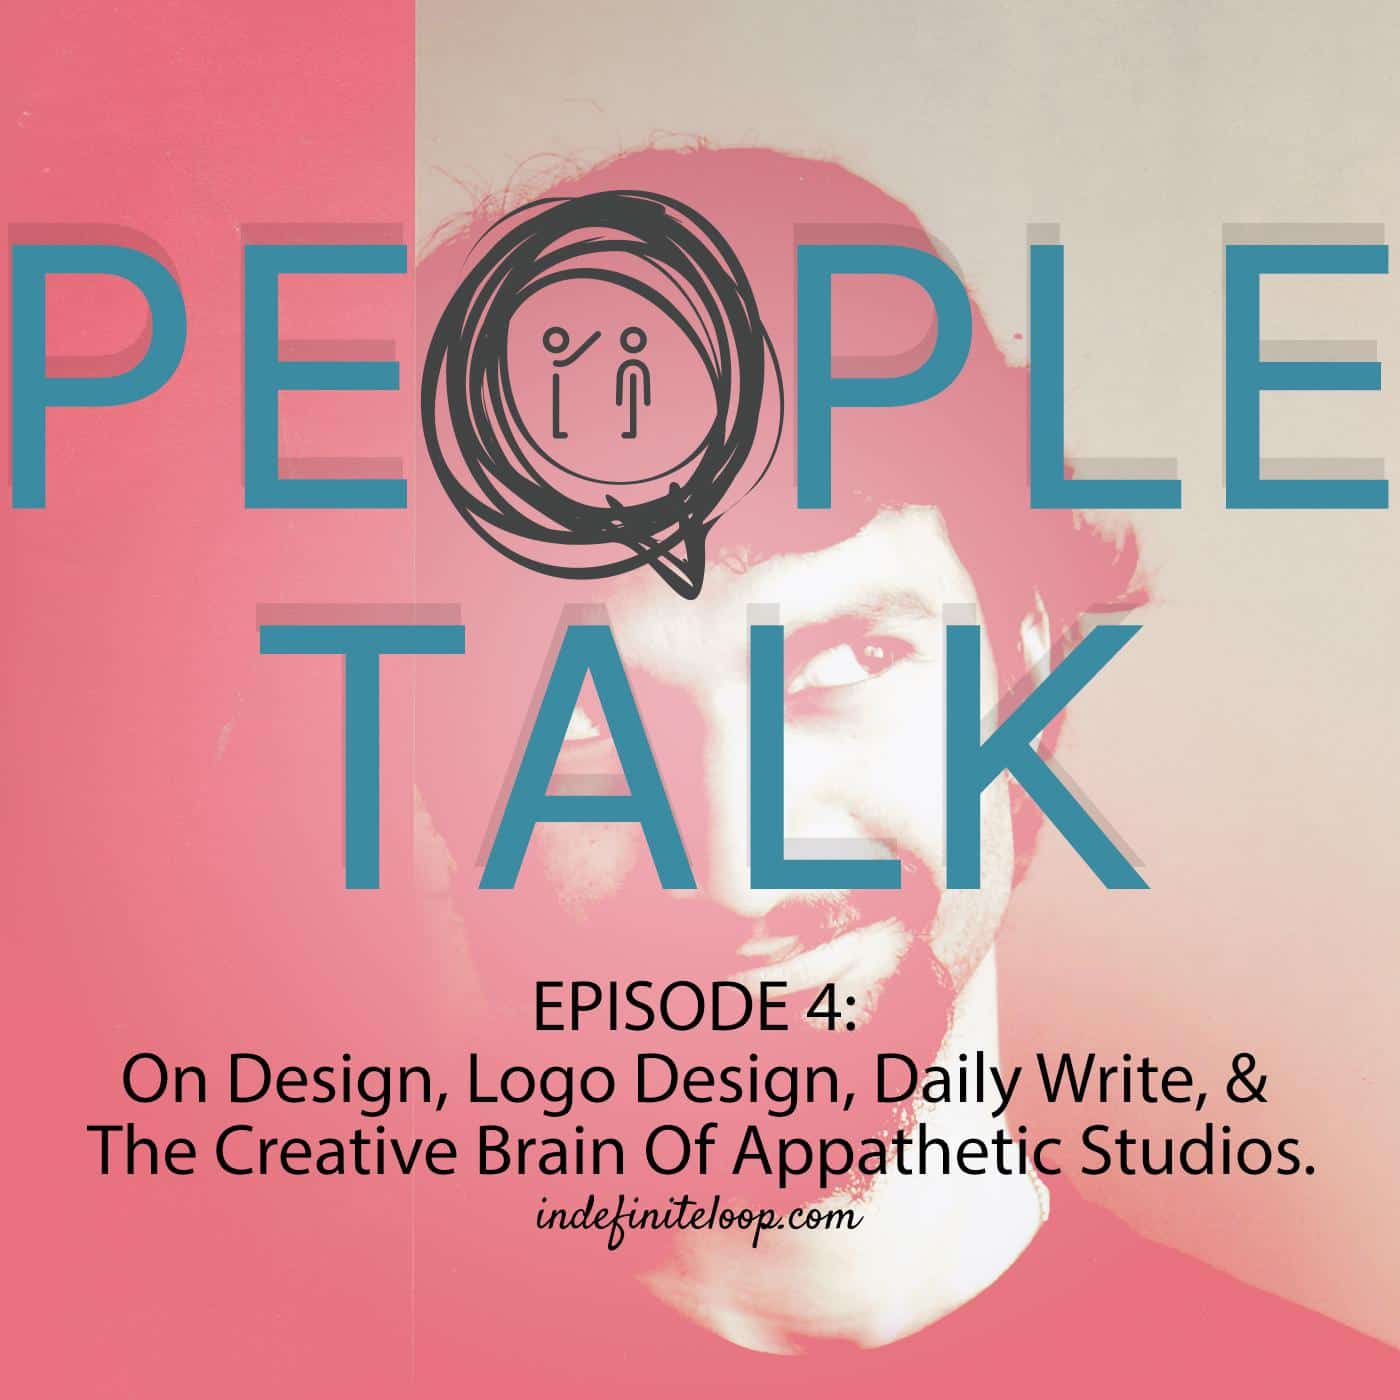 People Talk - Episode 4 - On Logos, Design, Art, And More, With Rahul Lewis